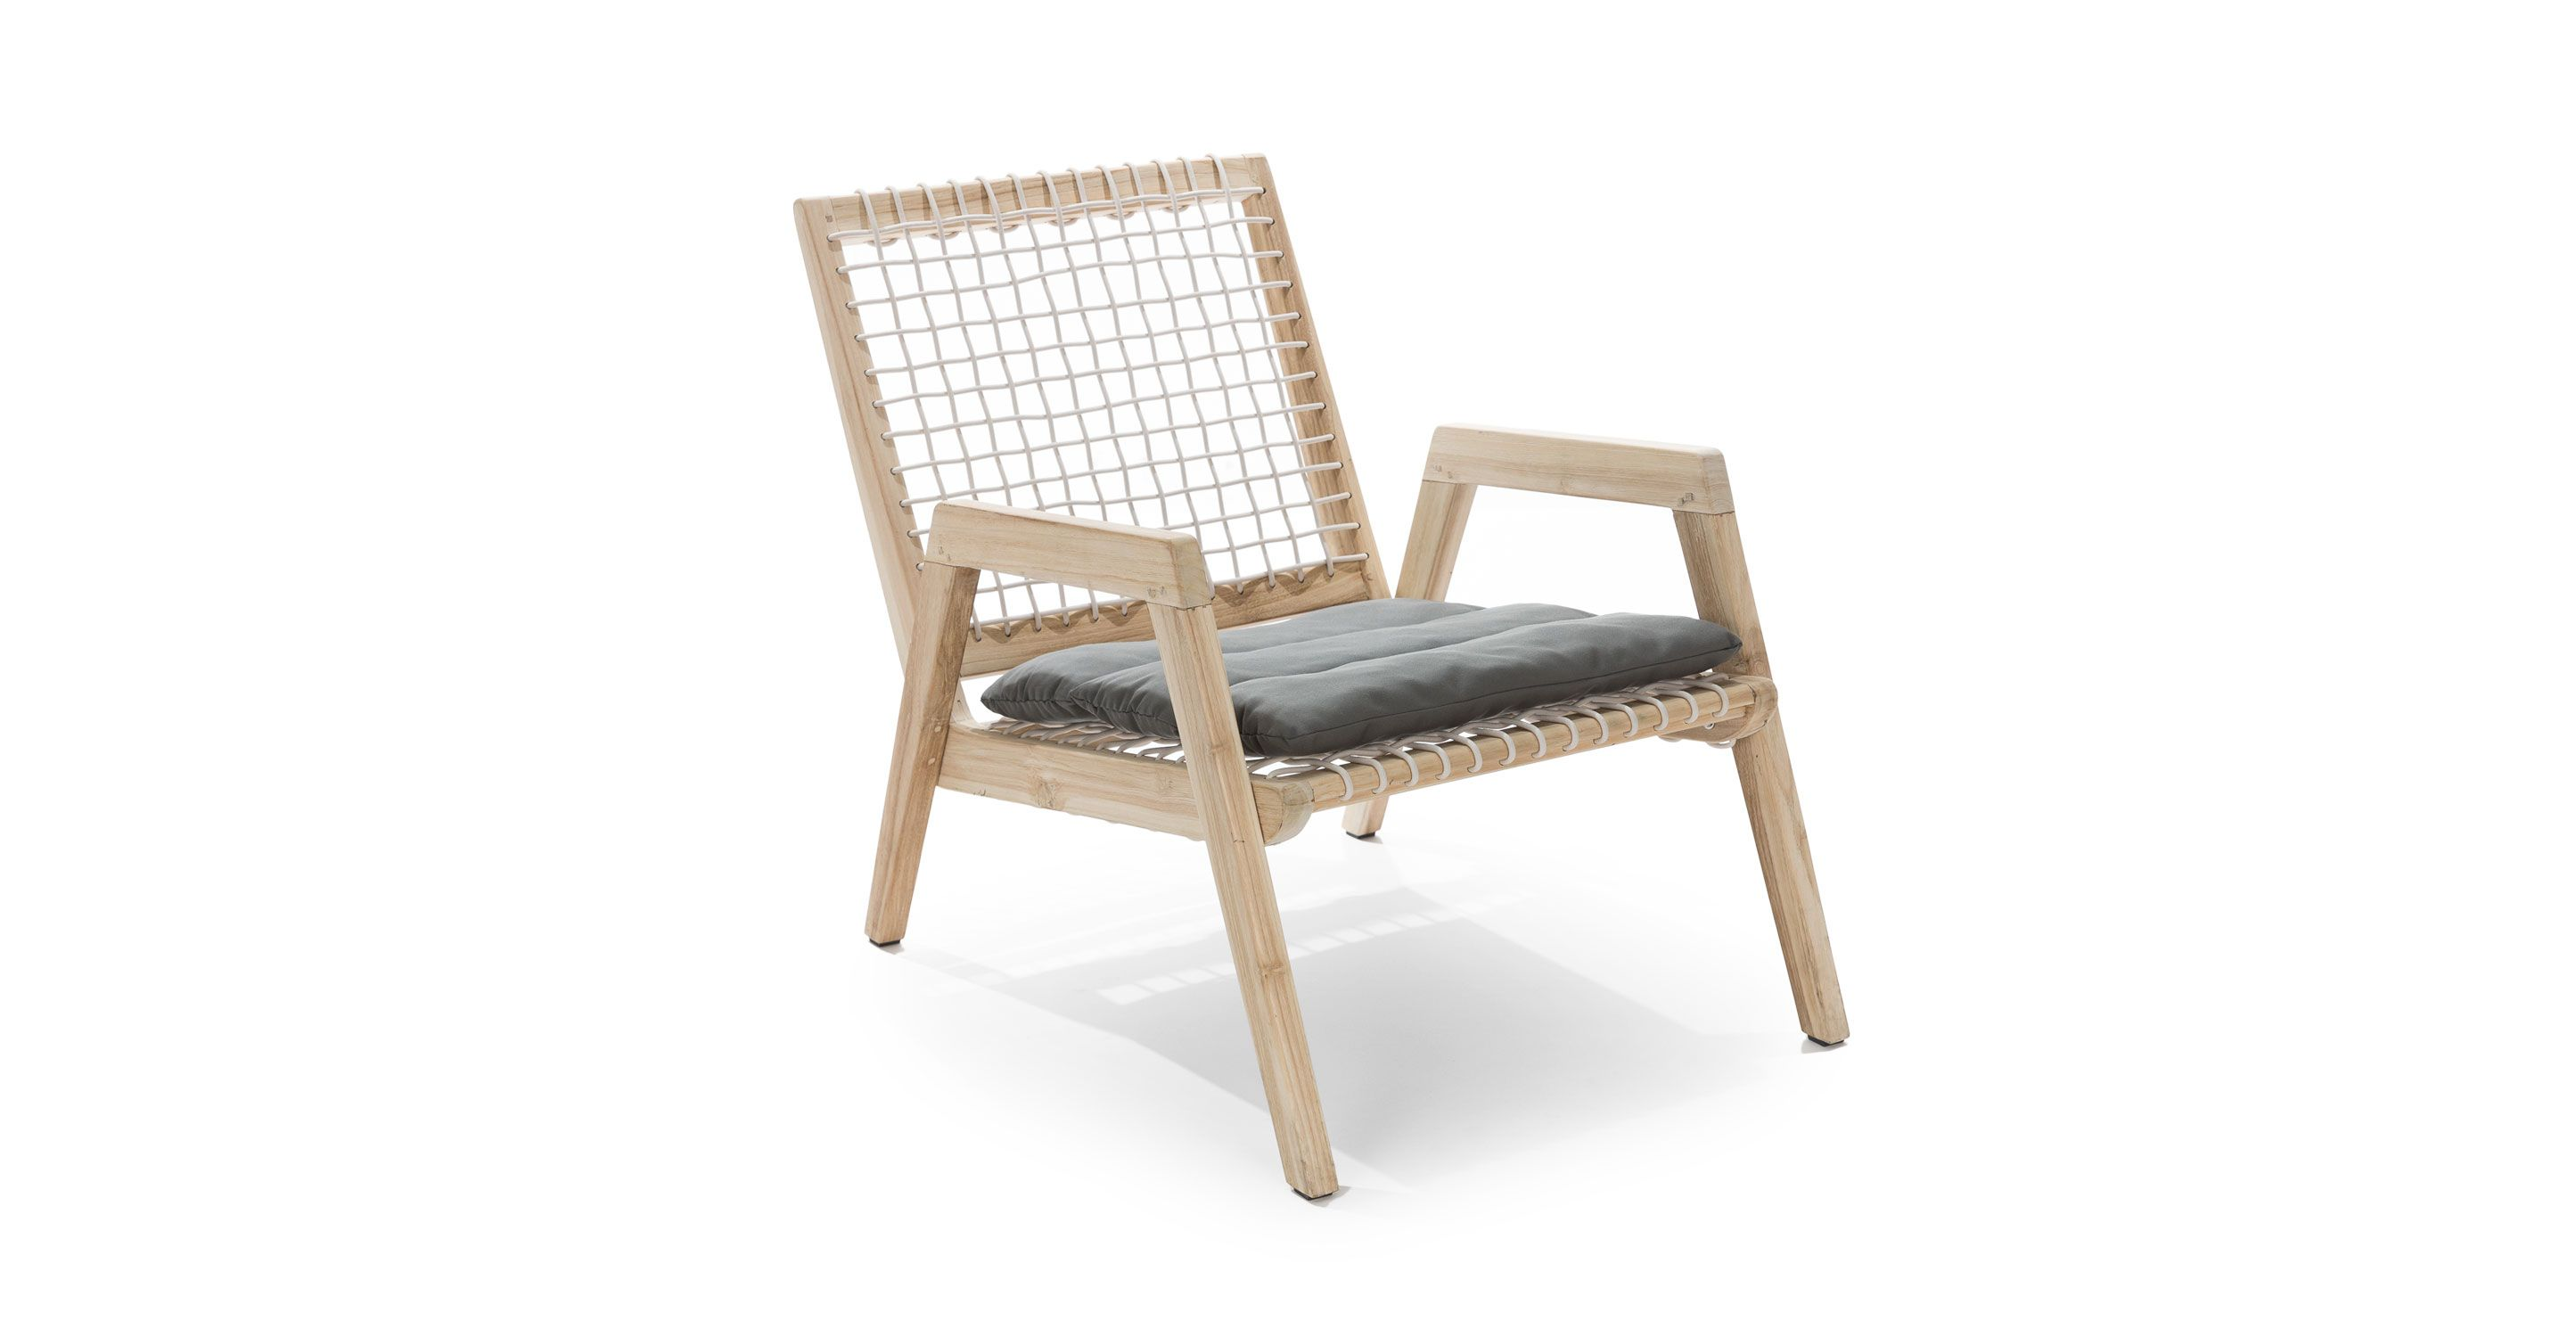 lounge chair outside wedding covers cambridge teak outdoor article teaka wooden furniture chairs modern mid century and scandinavian